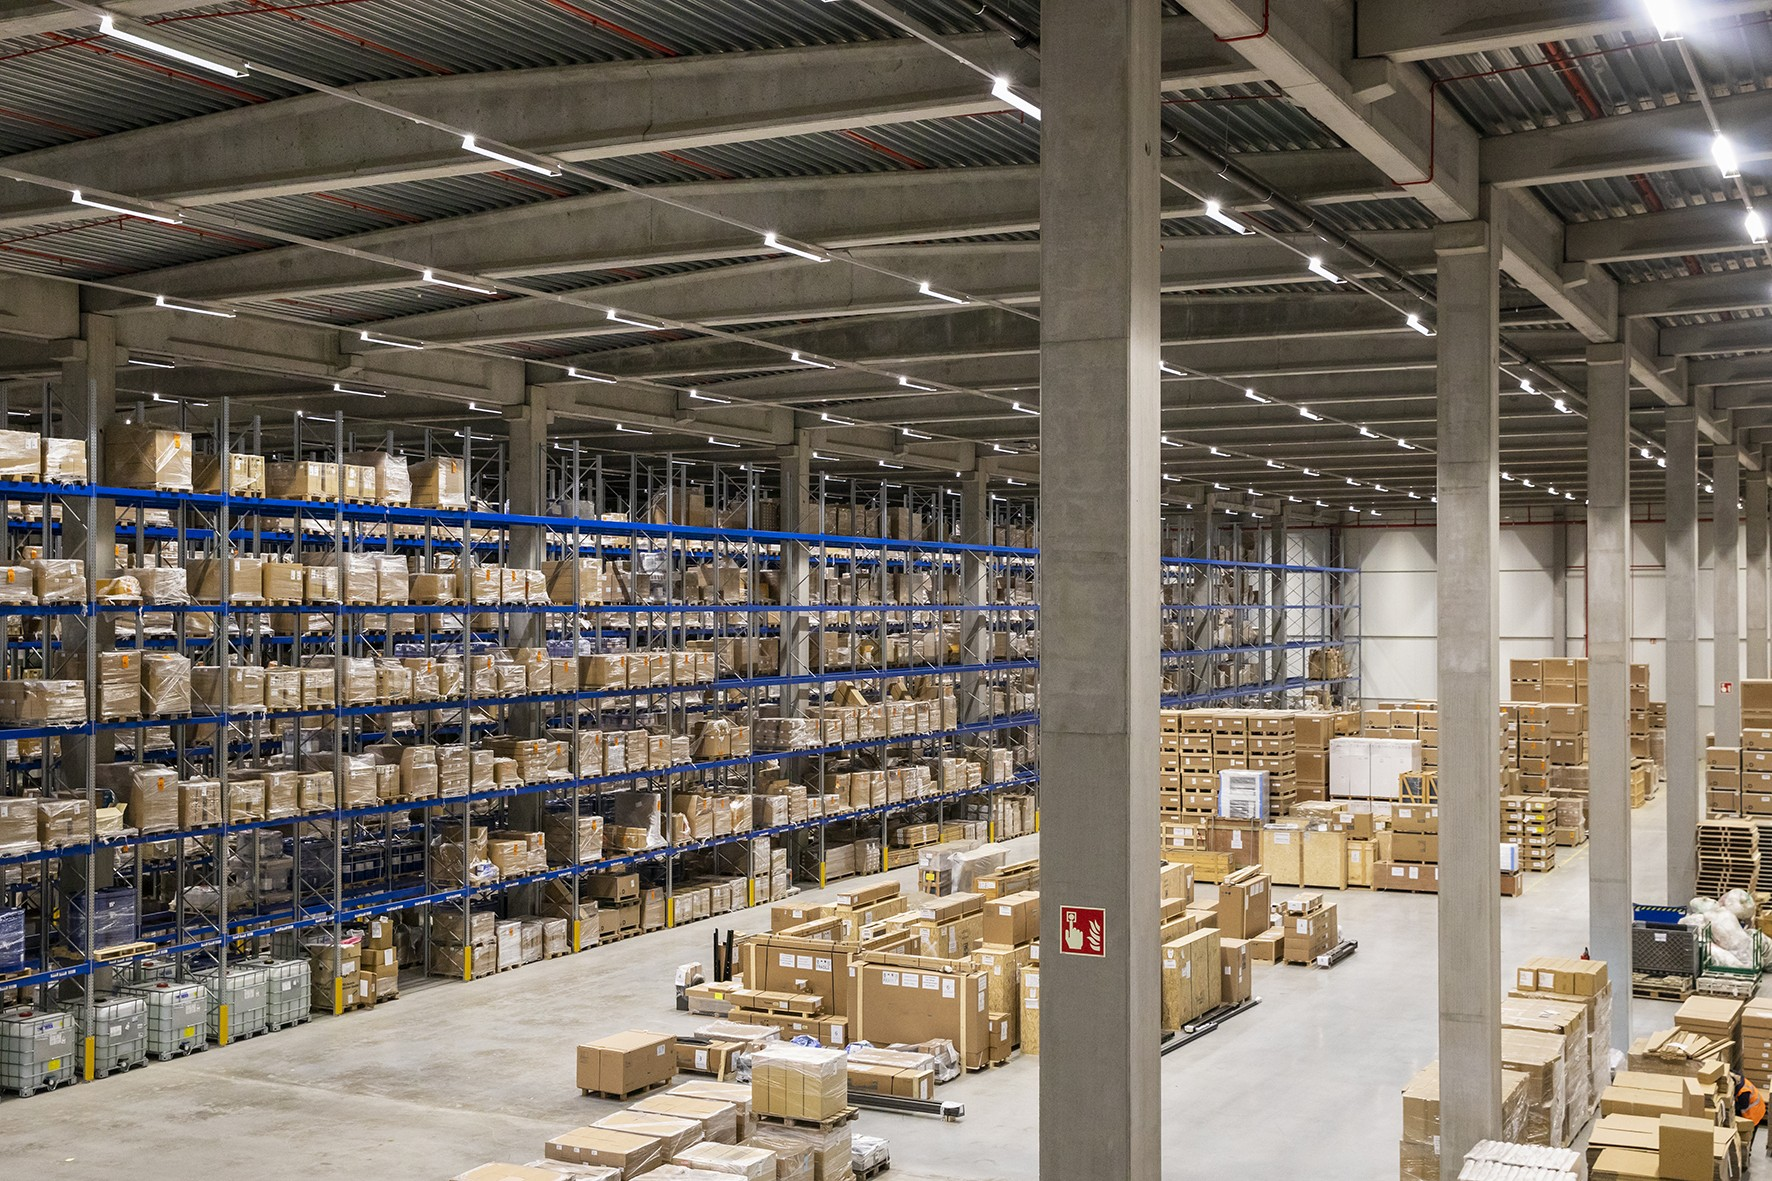 Plateforme logistique - K wdp mainfreight evergem10